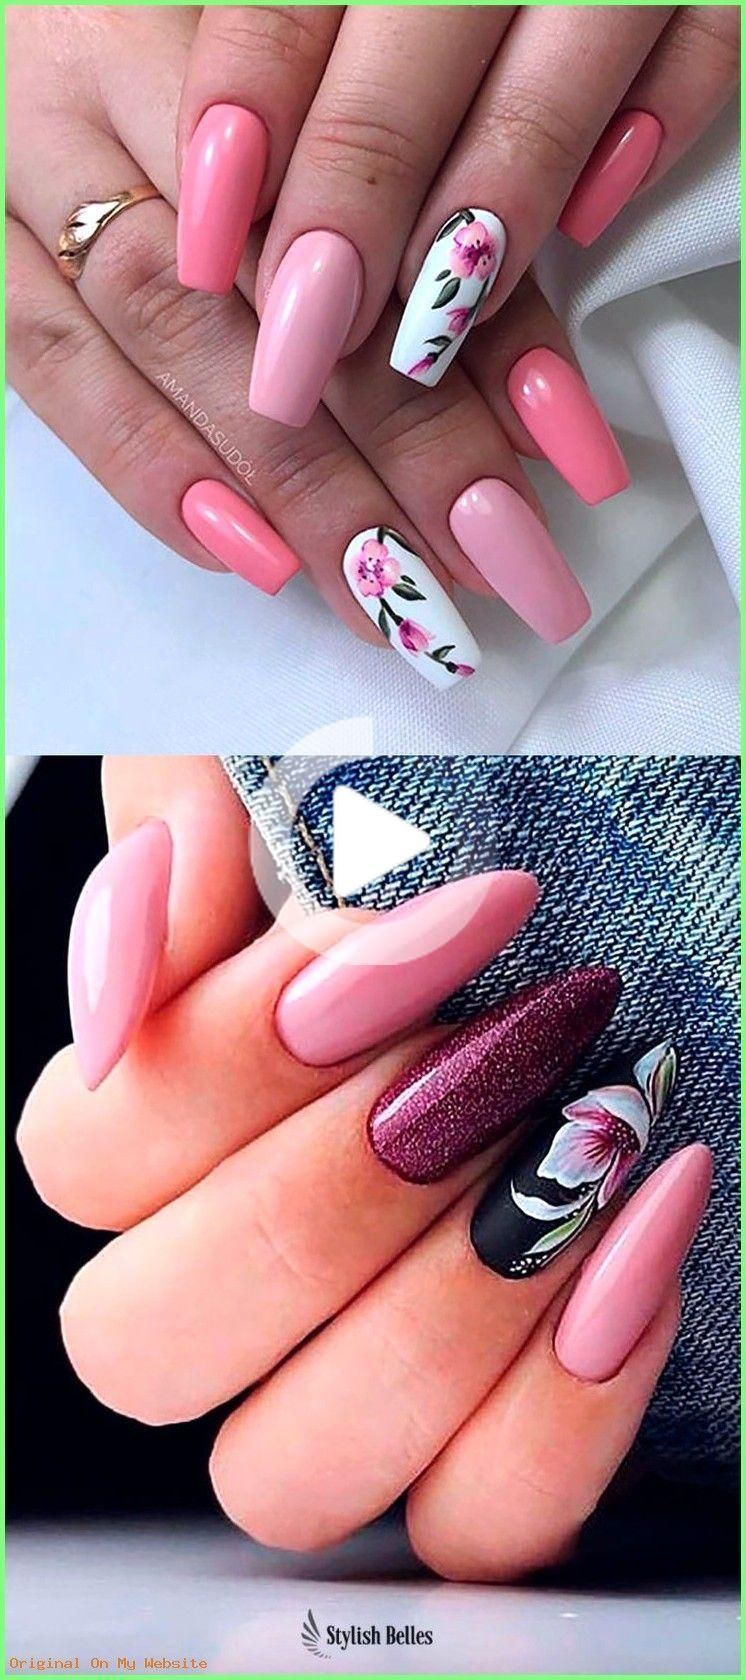 Summer Nails Designs 2019- Cute coffin and almond floral nails ideas #